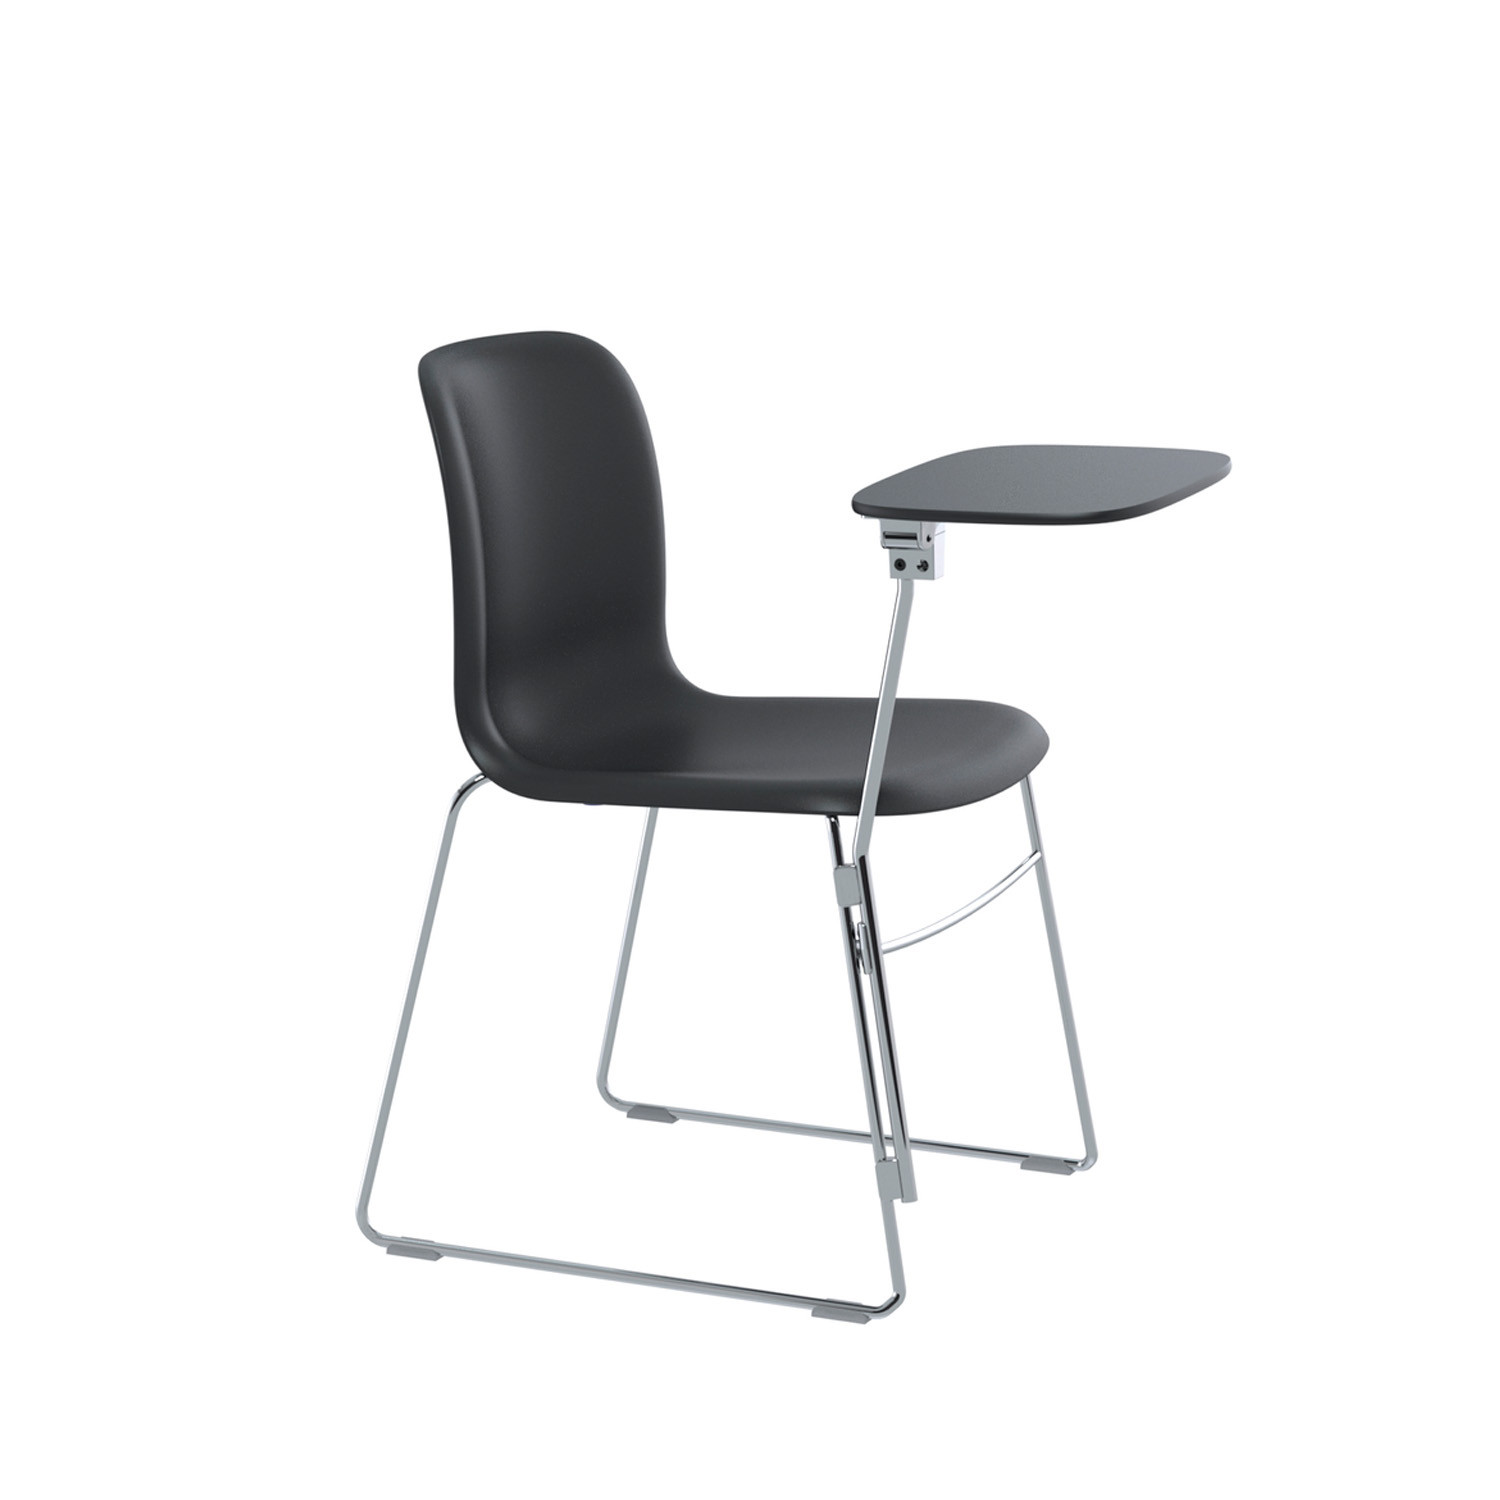 Six Educational Chair with Tablet